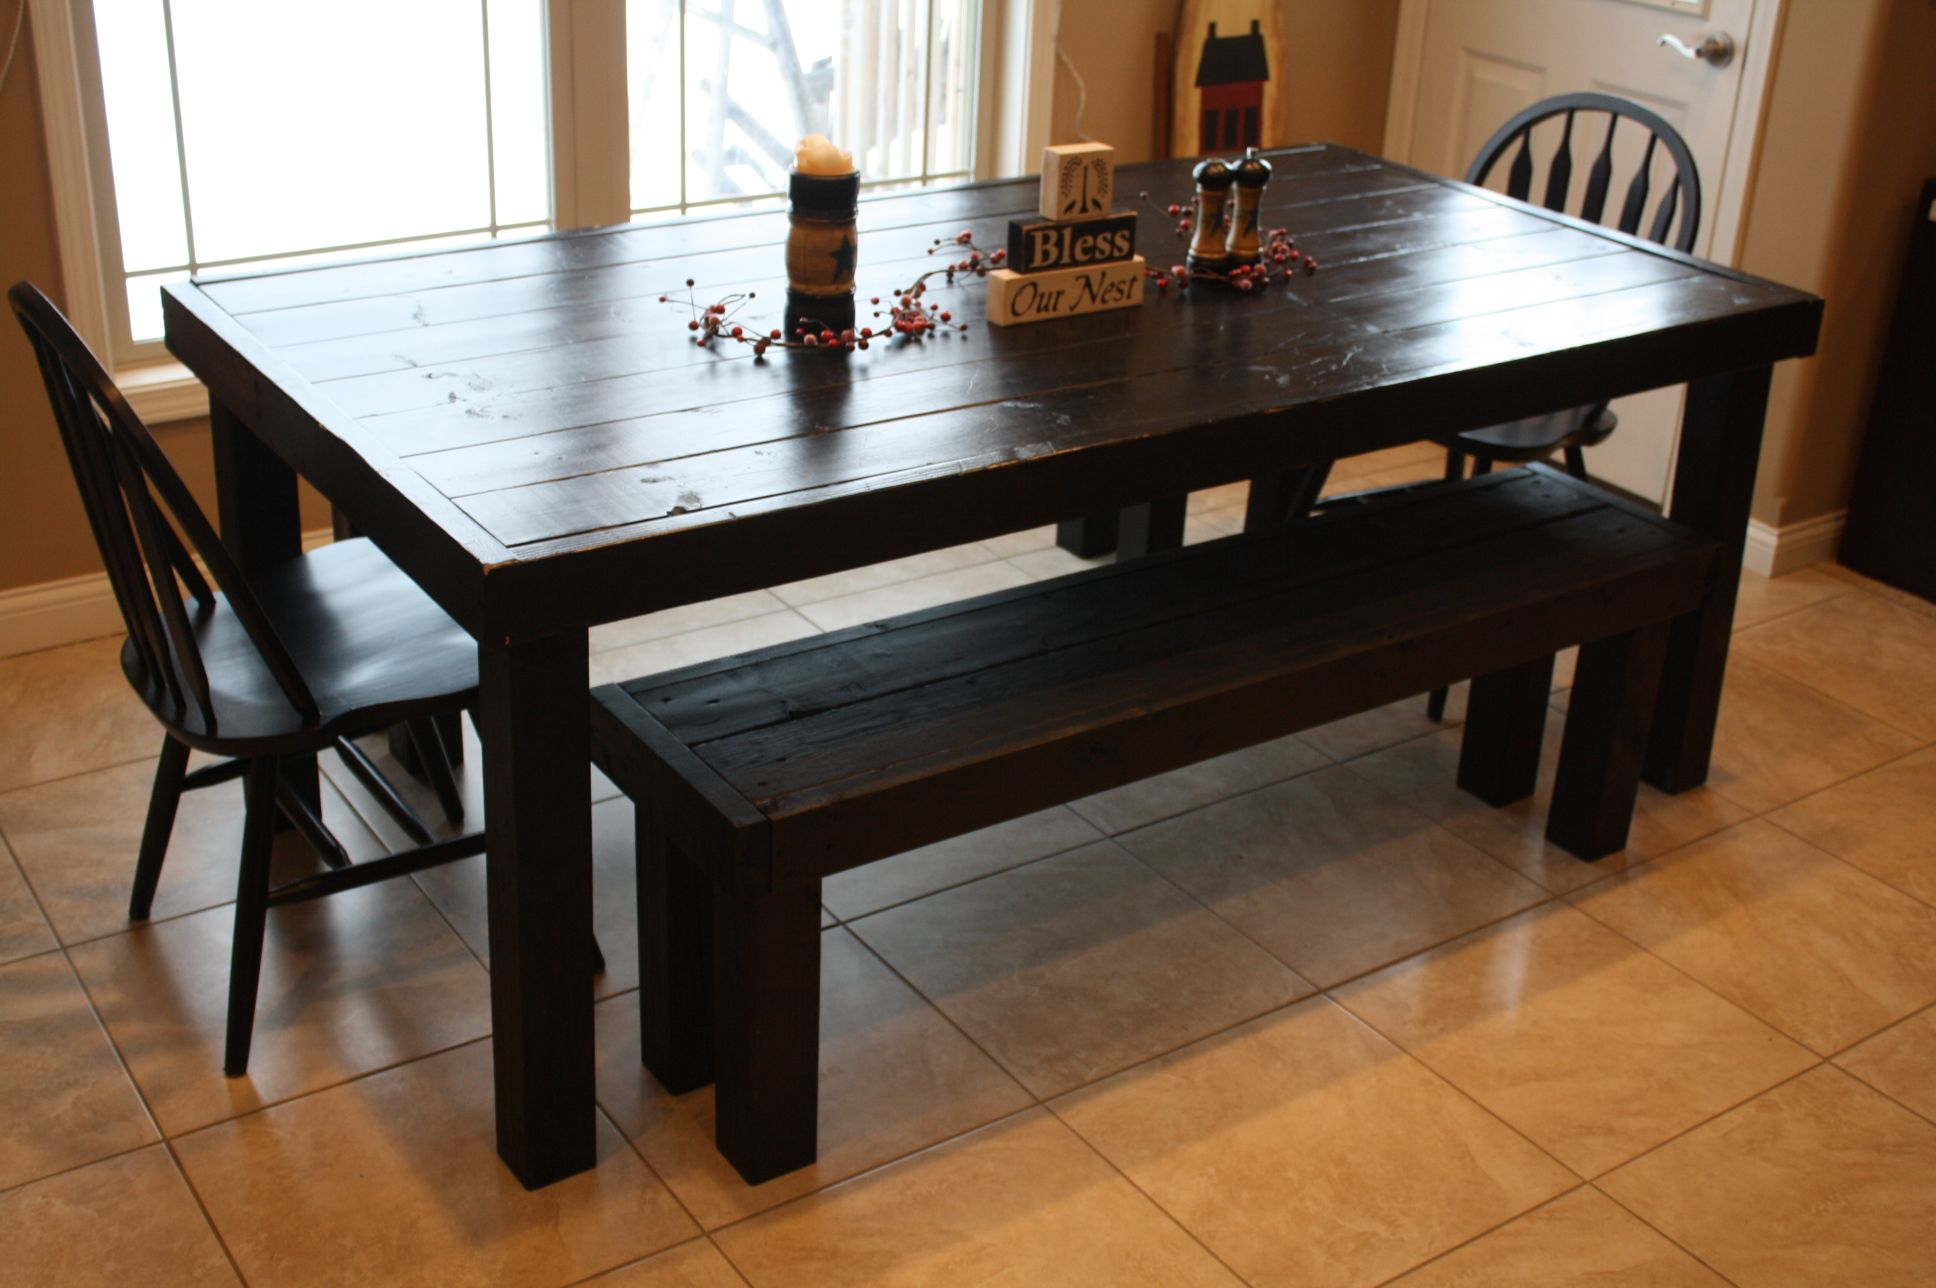 For Sale Primitive Look 80 Black Table Two Benches Bench Price 75 00 Per Bench Table Price 300 0 Solid Wood Kitchens Dining Room Table Black Table